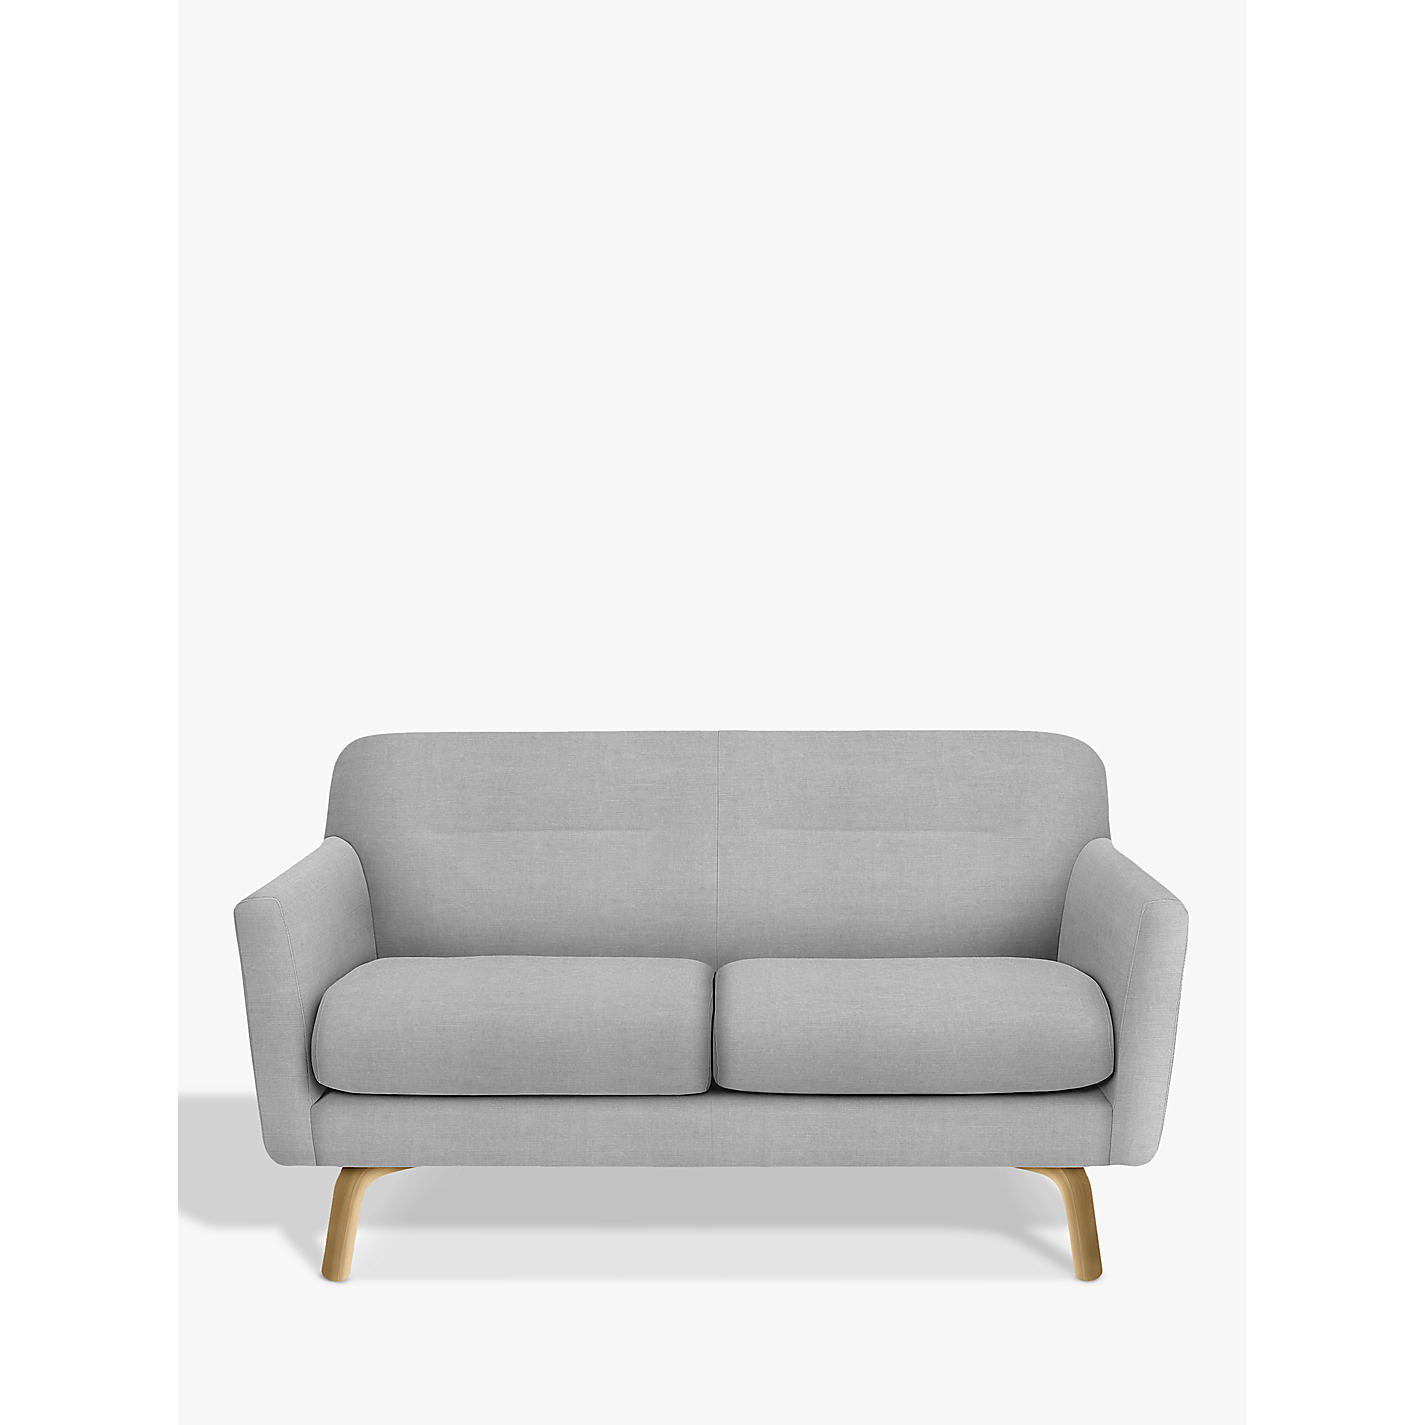 Buy John Lewis Archie Medium 2 Seater Sofa Light Leg Saga Grey